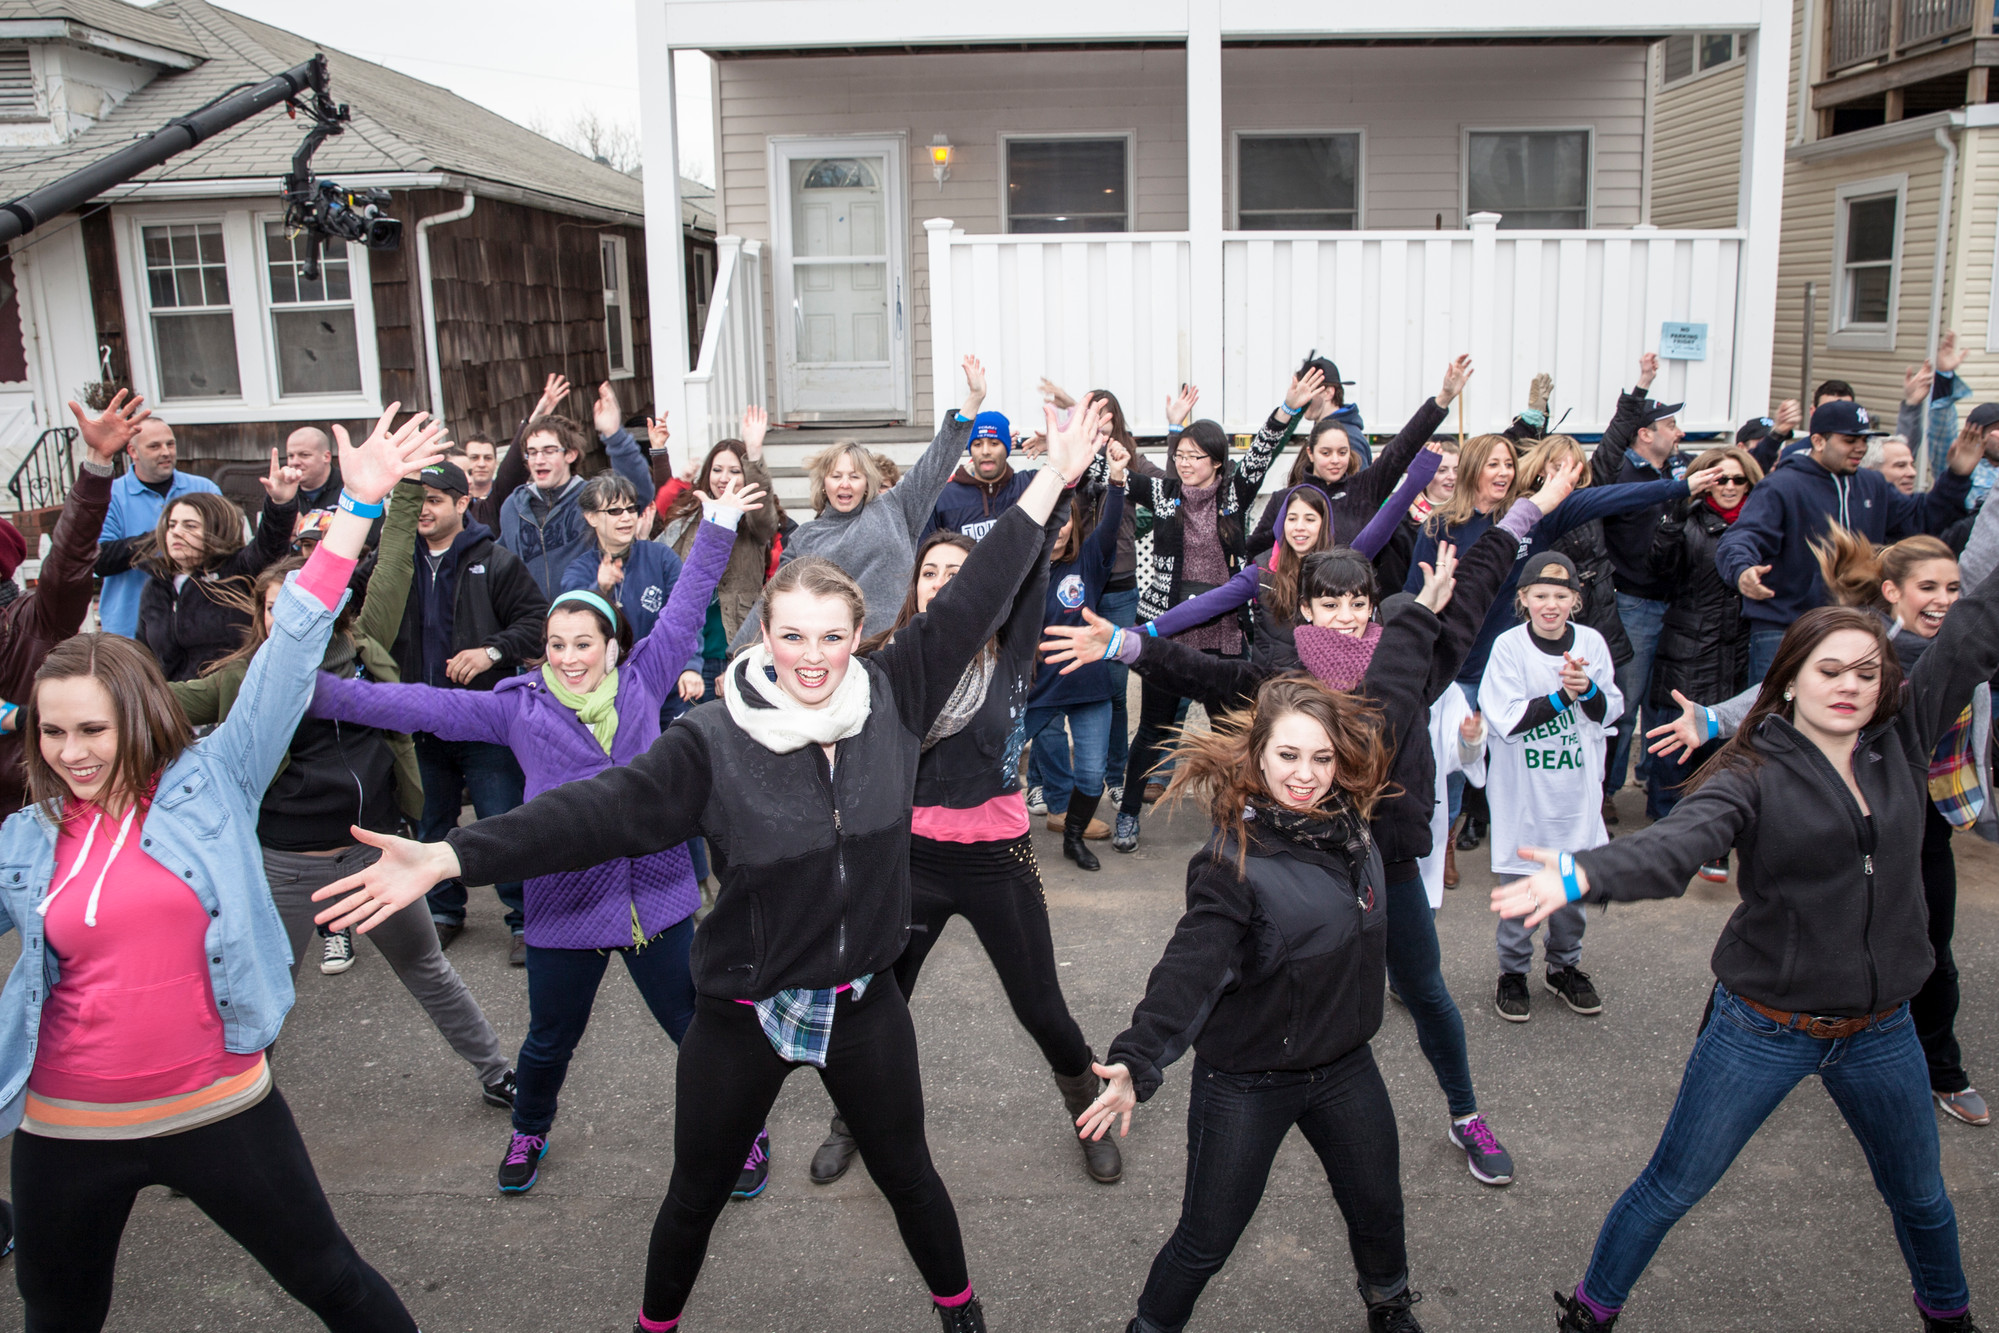 The flash mob performs outside of the Enrights' house.